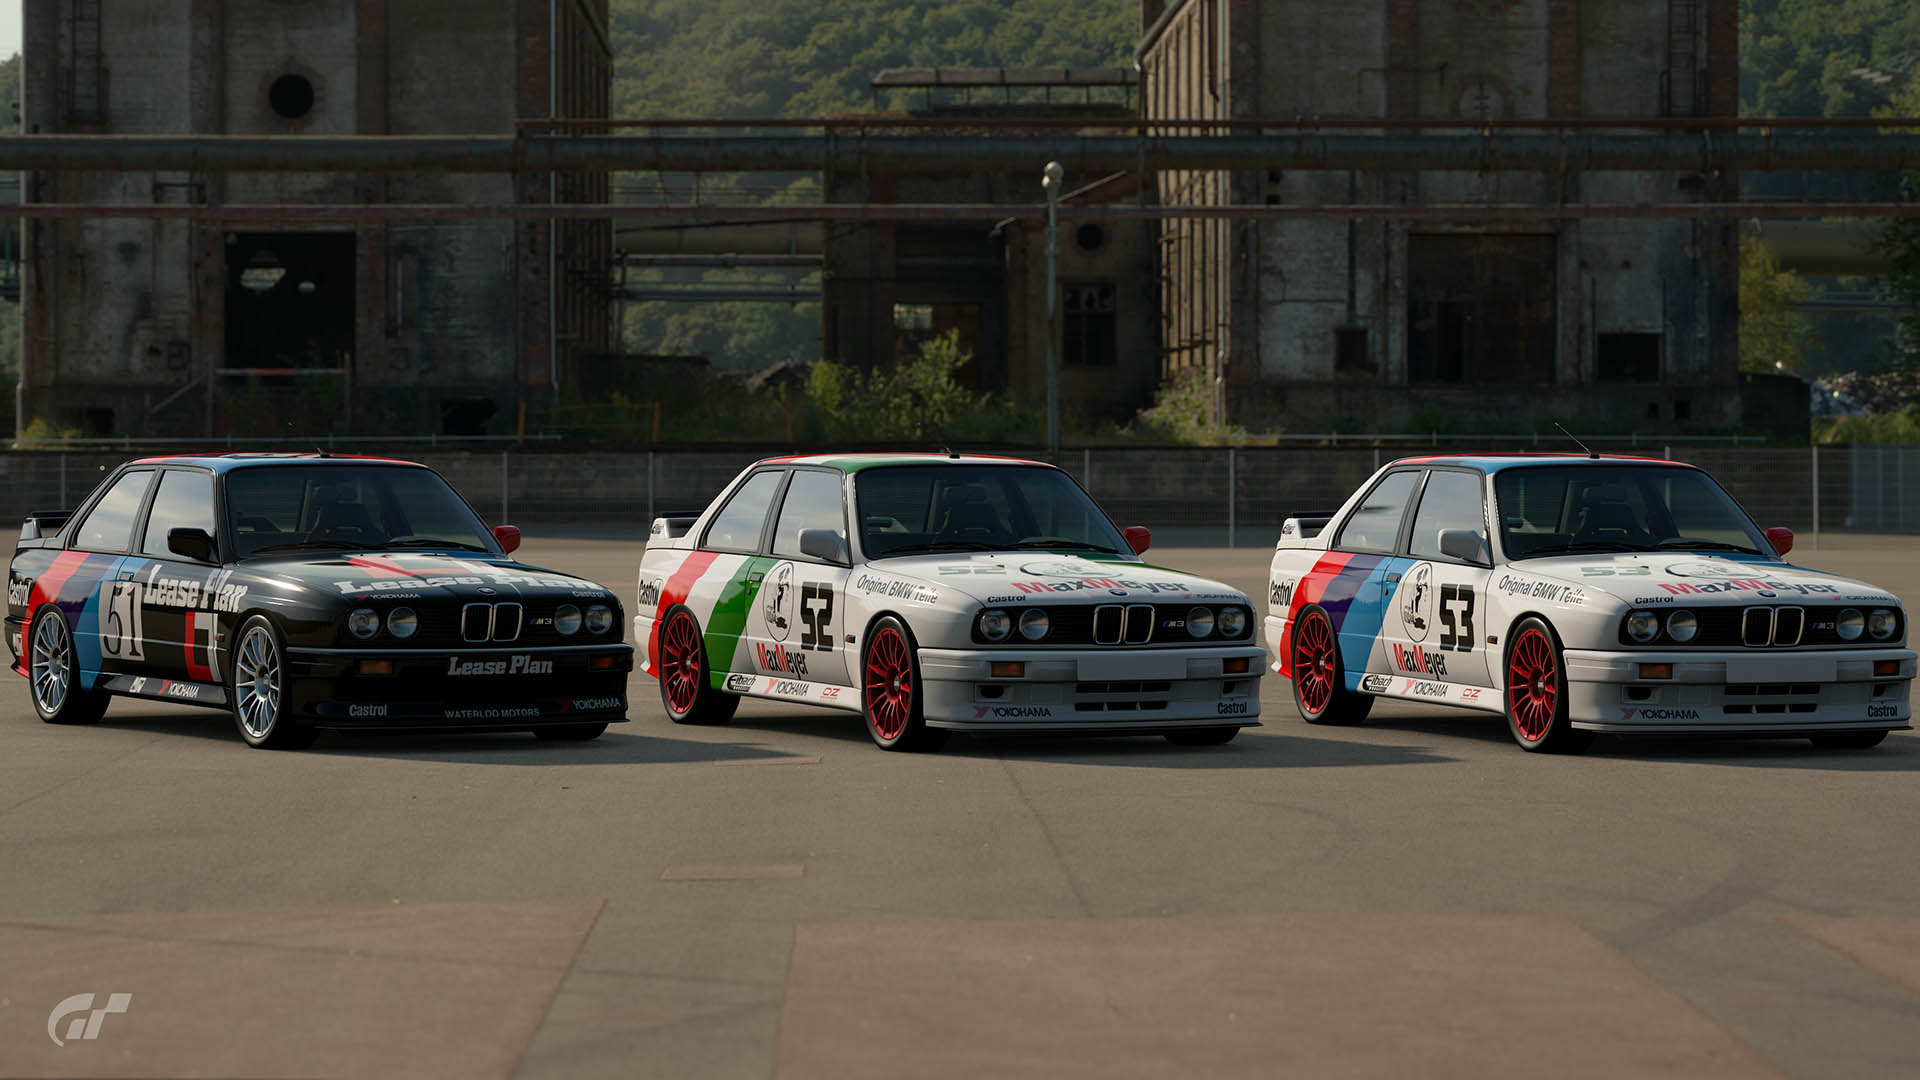 1988 ETCC Team Bigazzi BMW M3 Liveries